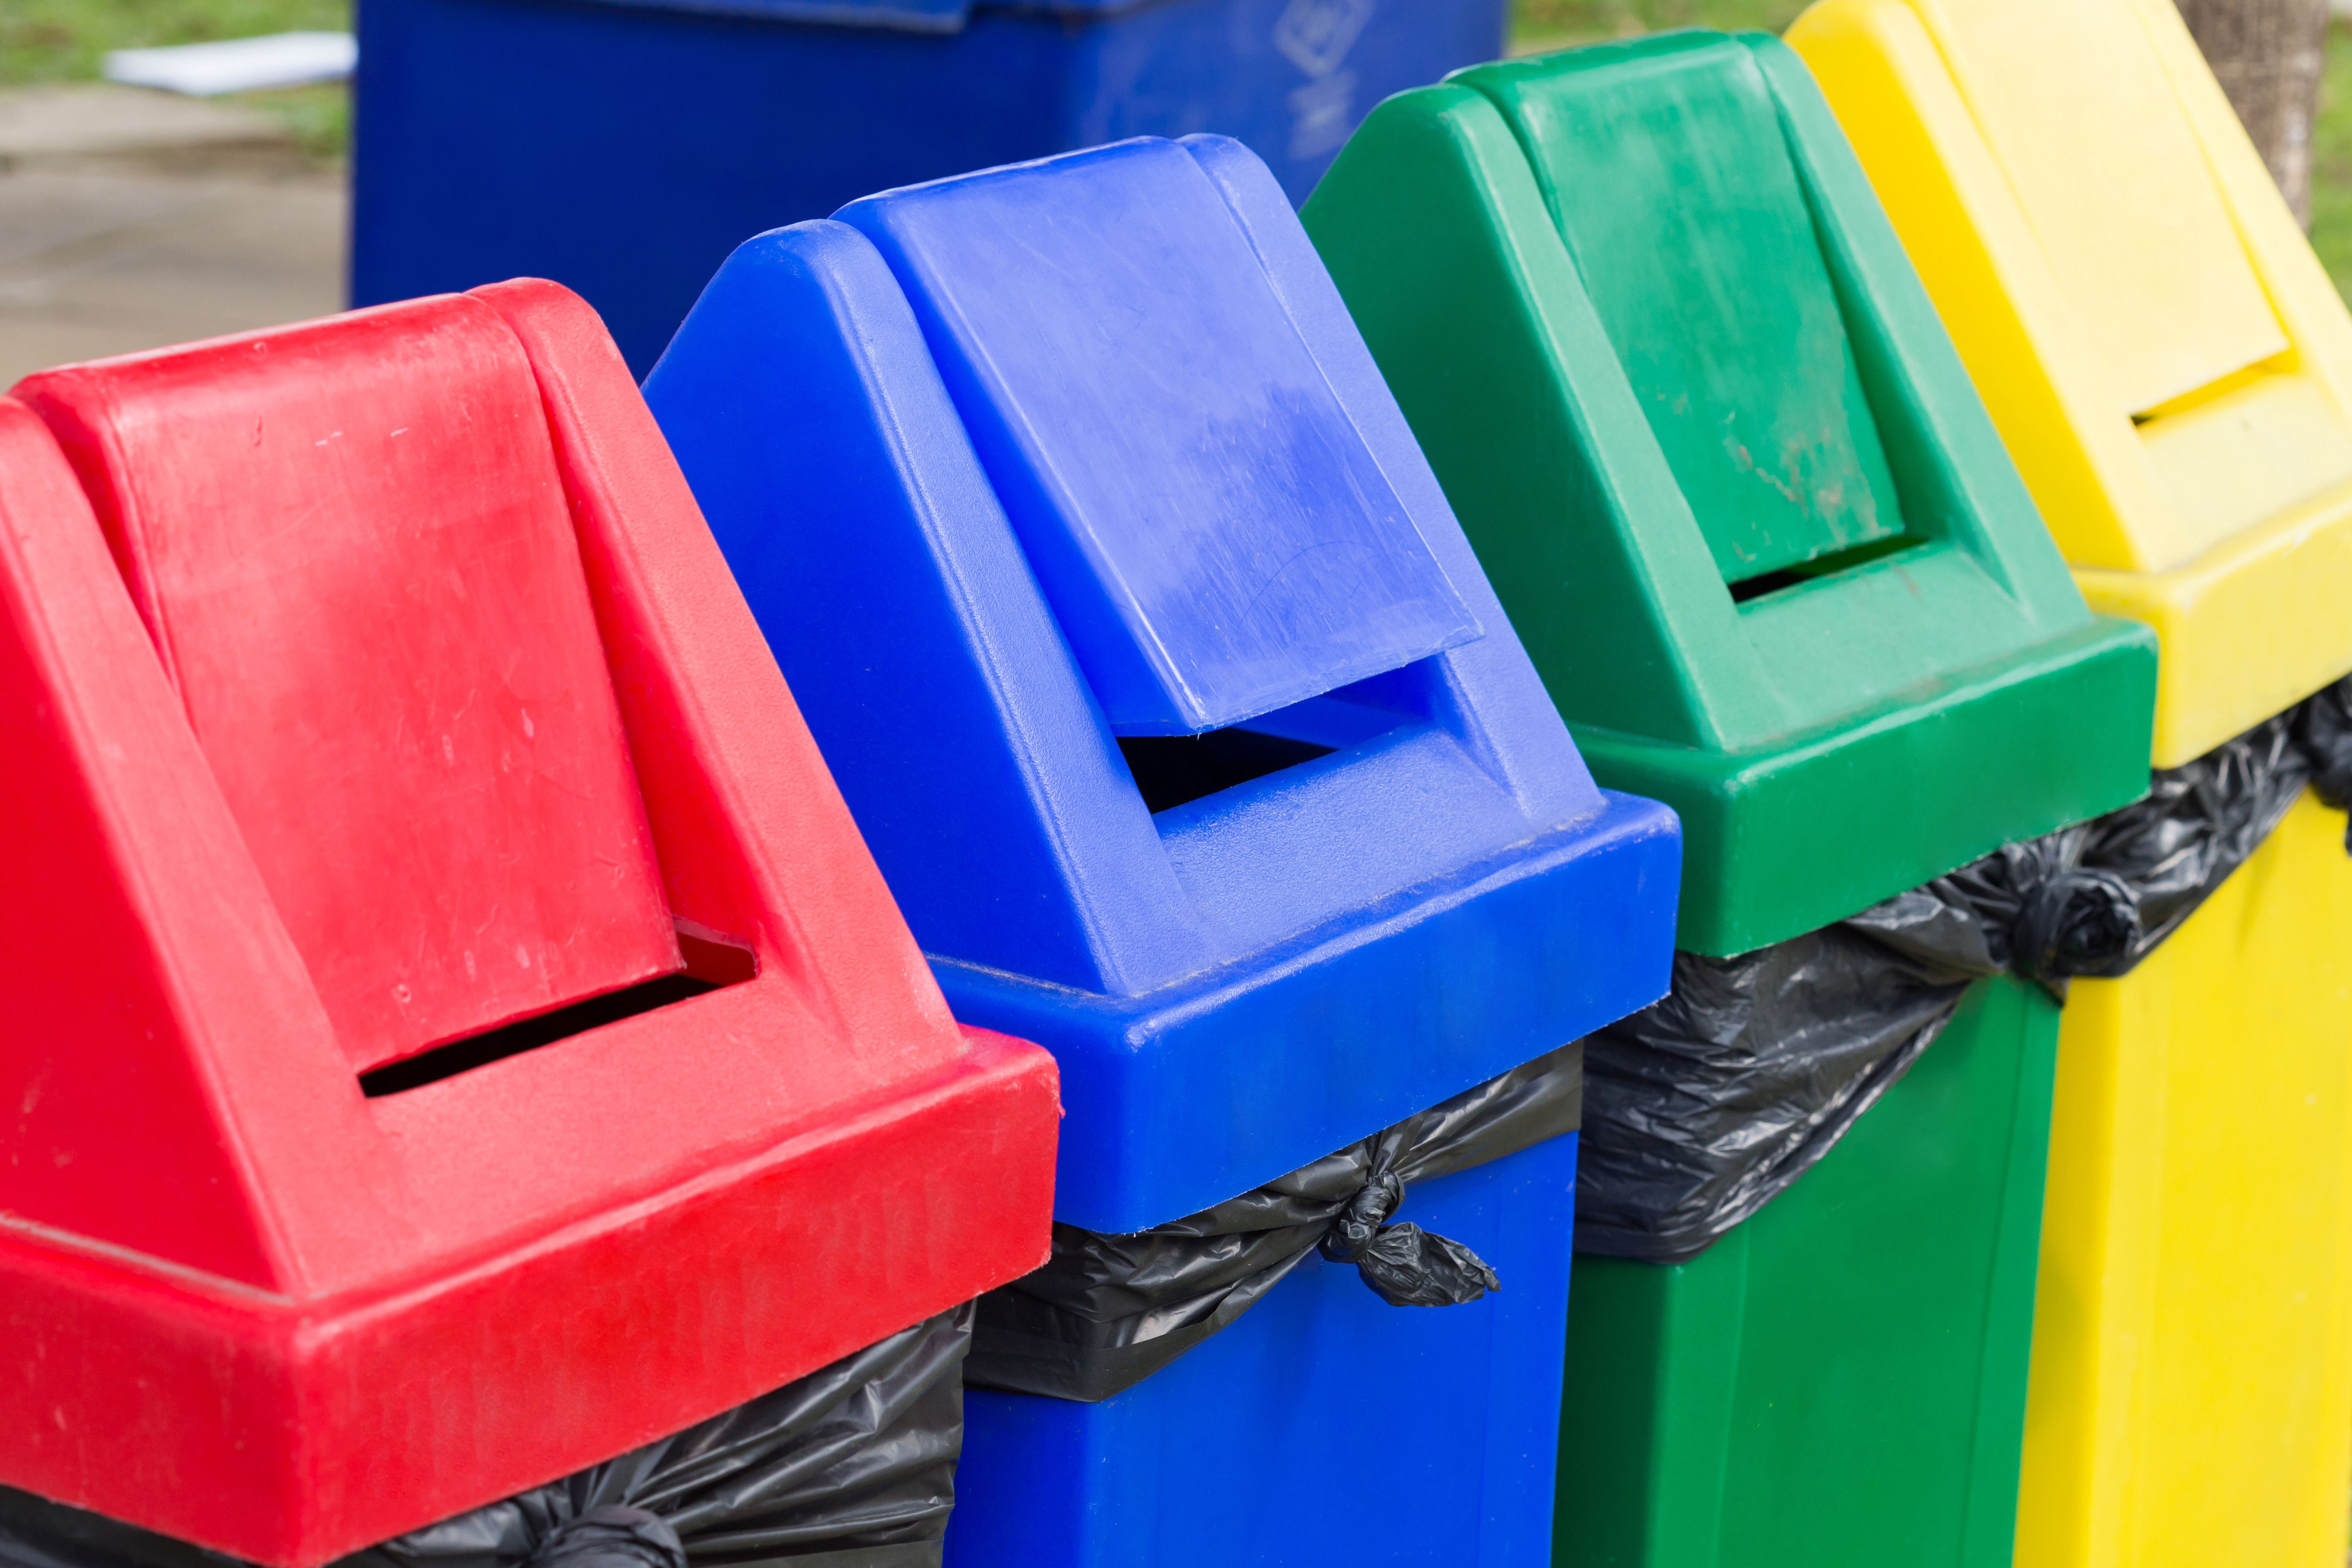 Article image for 'It's finished': Concerns raised over recycling bin use